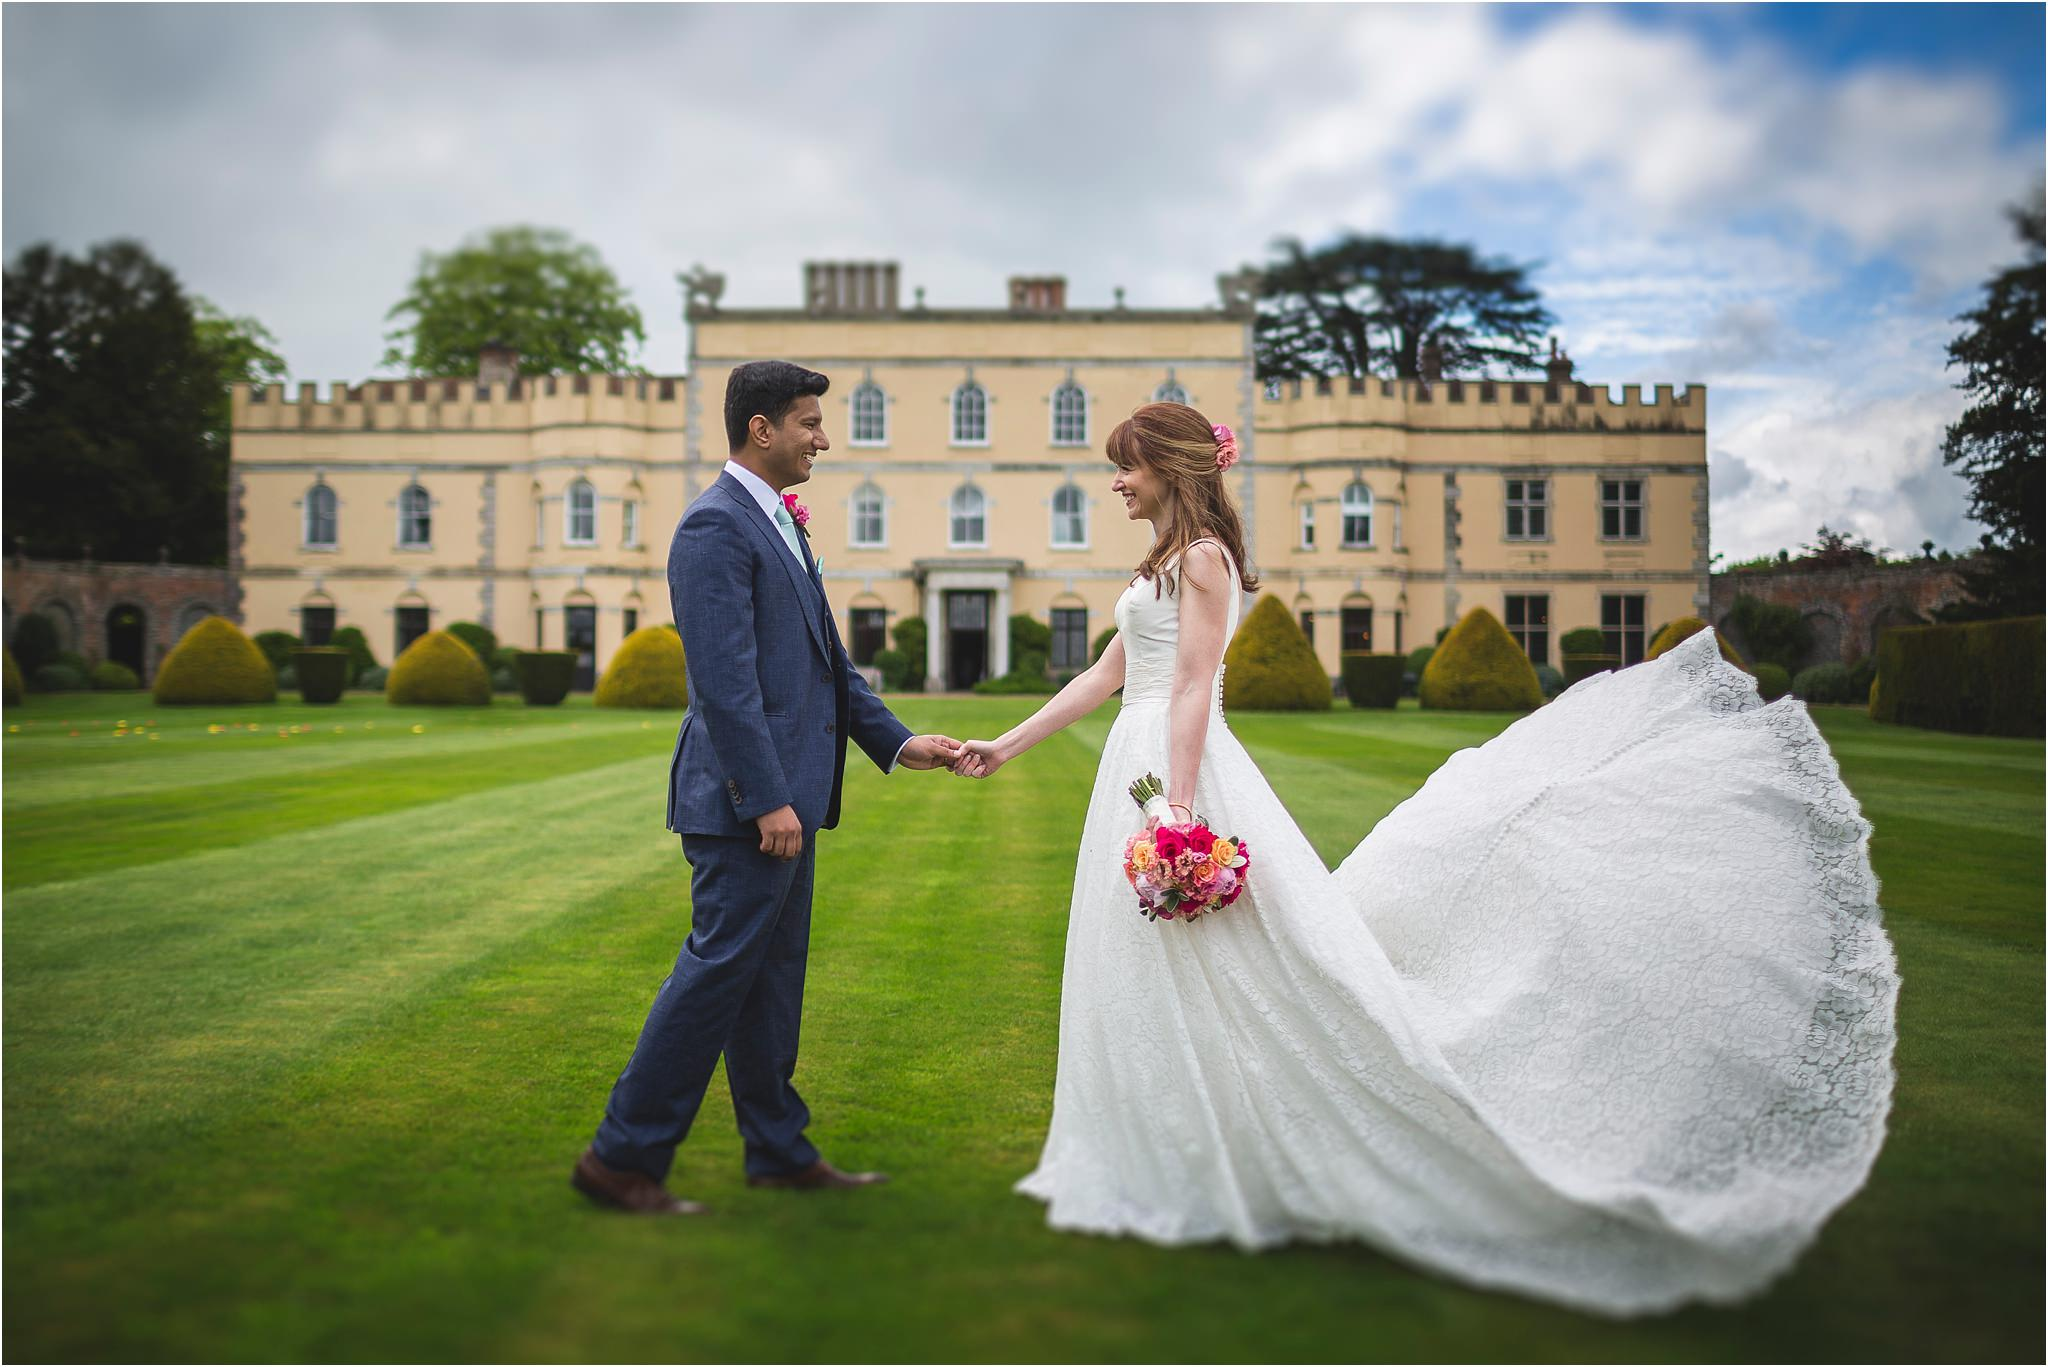 A bride and groom coming together in front of their wedding venue. The brides dress train has been flung in the air. Image by S2 Images, Hampden House Wedding Photographer